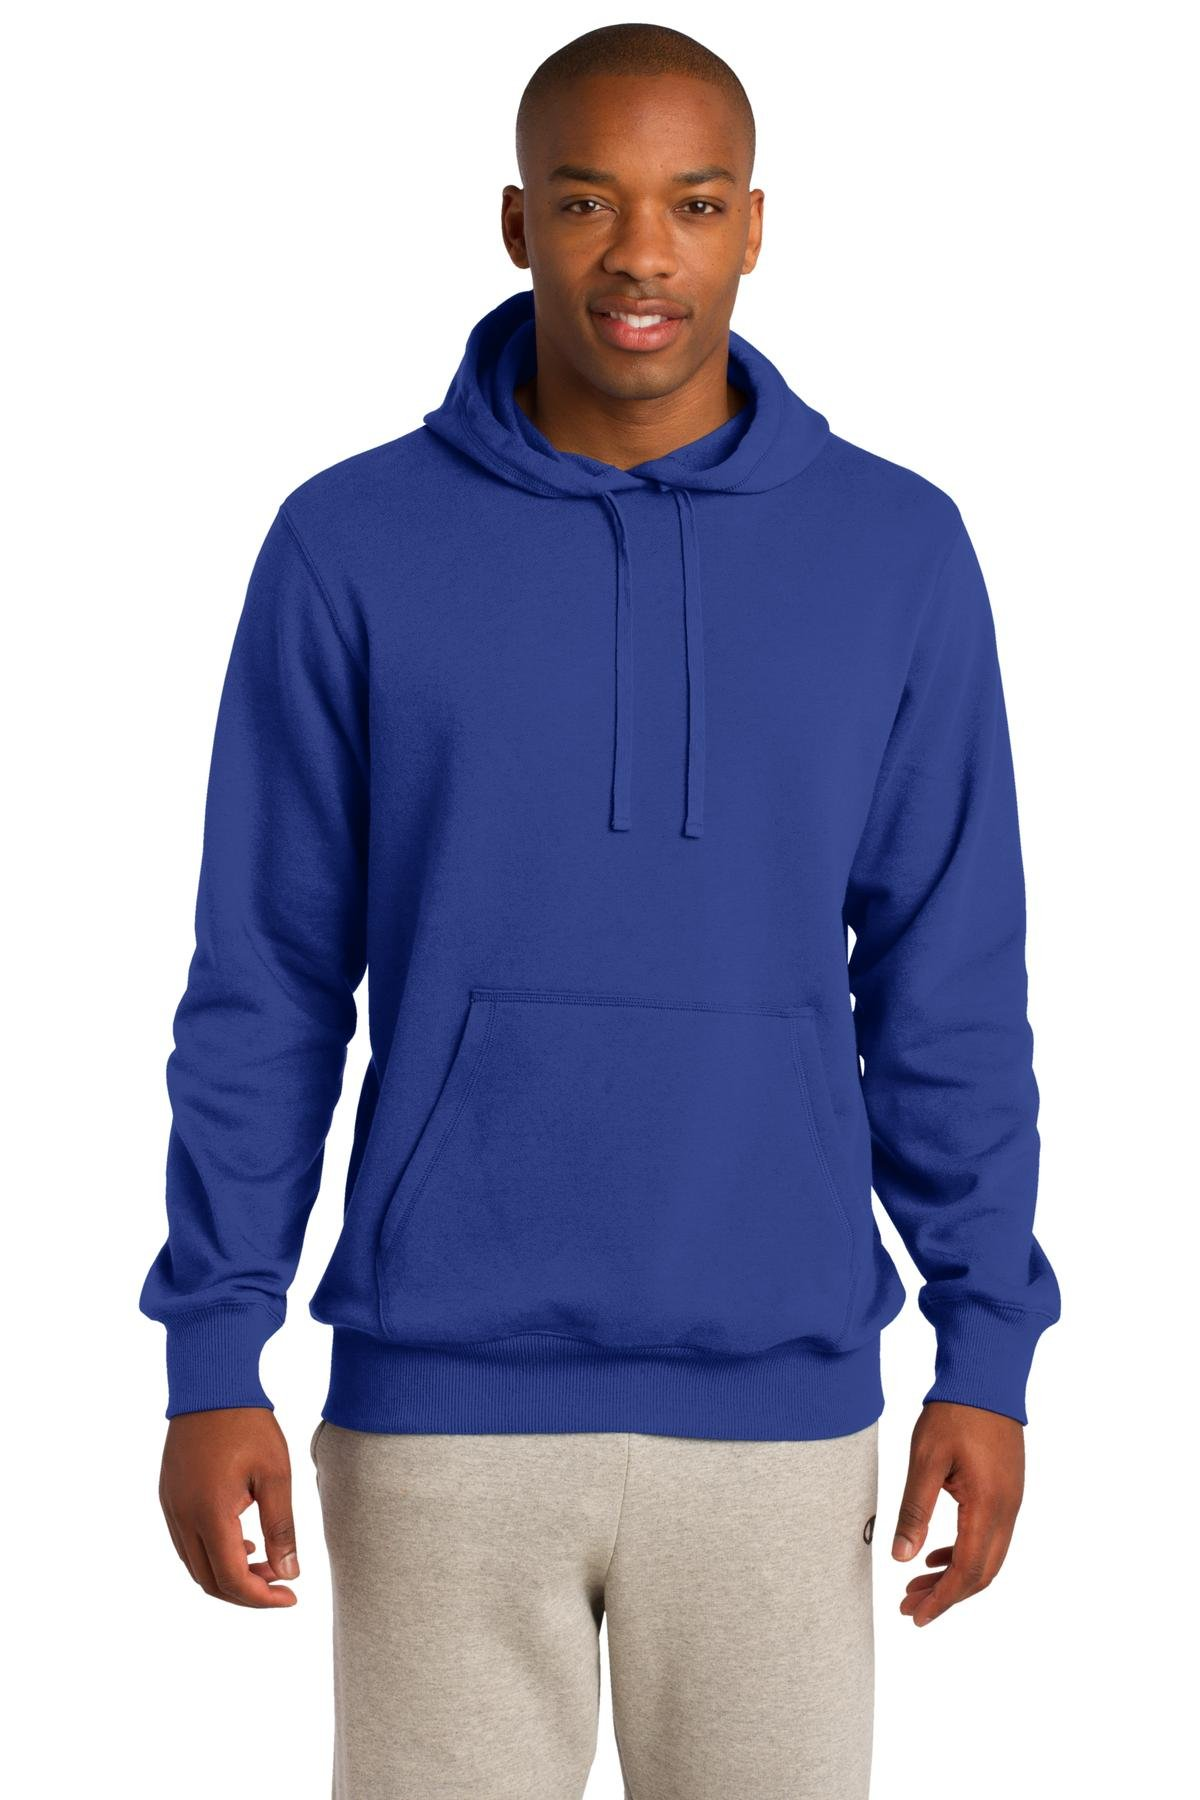 Sport-Tek Tall Pullover Hooded Sweatshirt. TST254 True Royal XLT by Sport-Tek